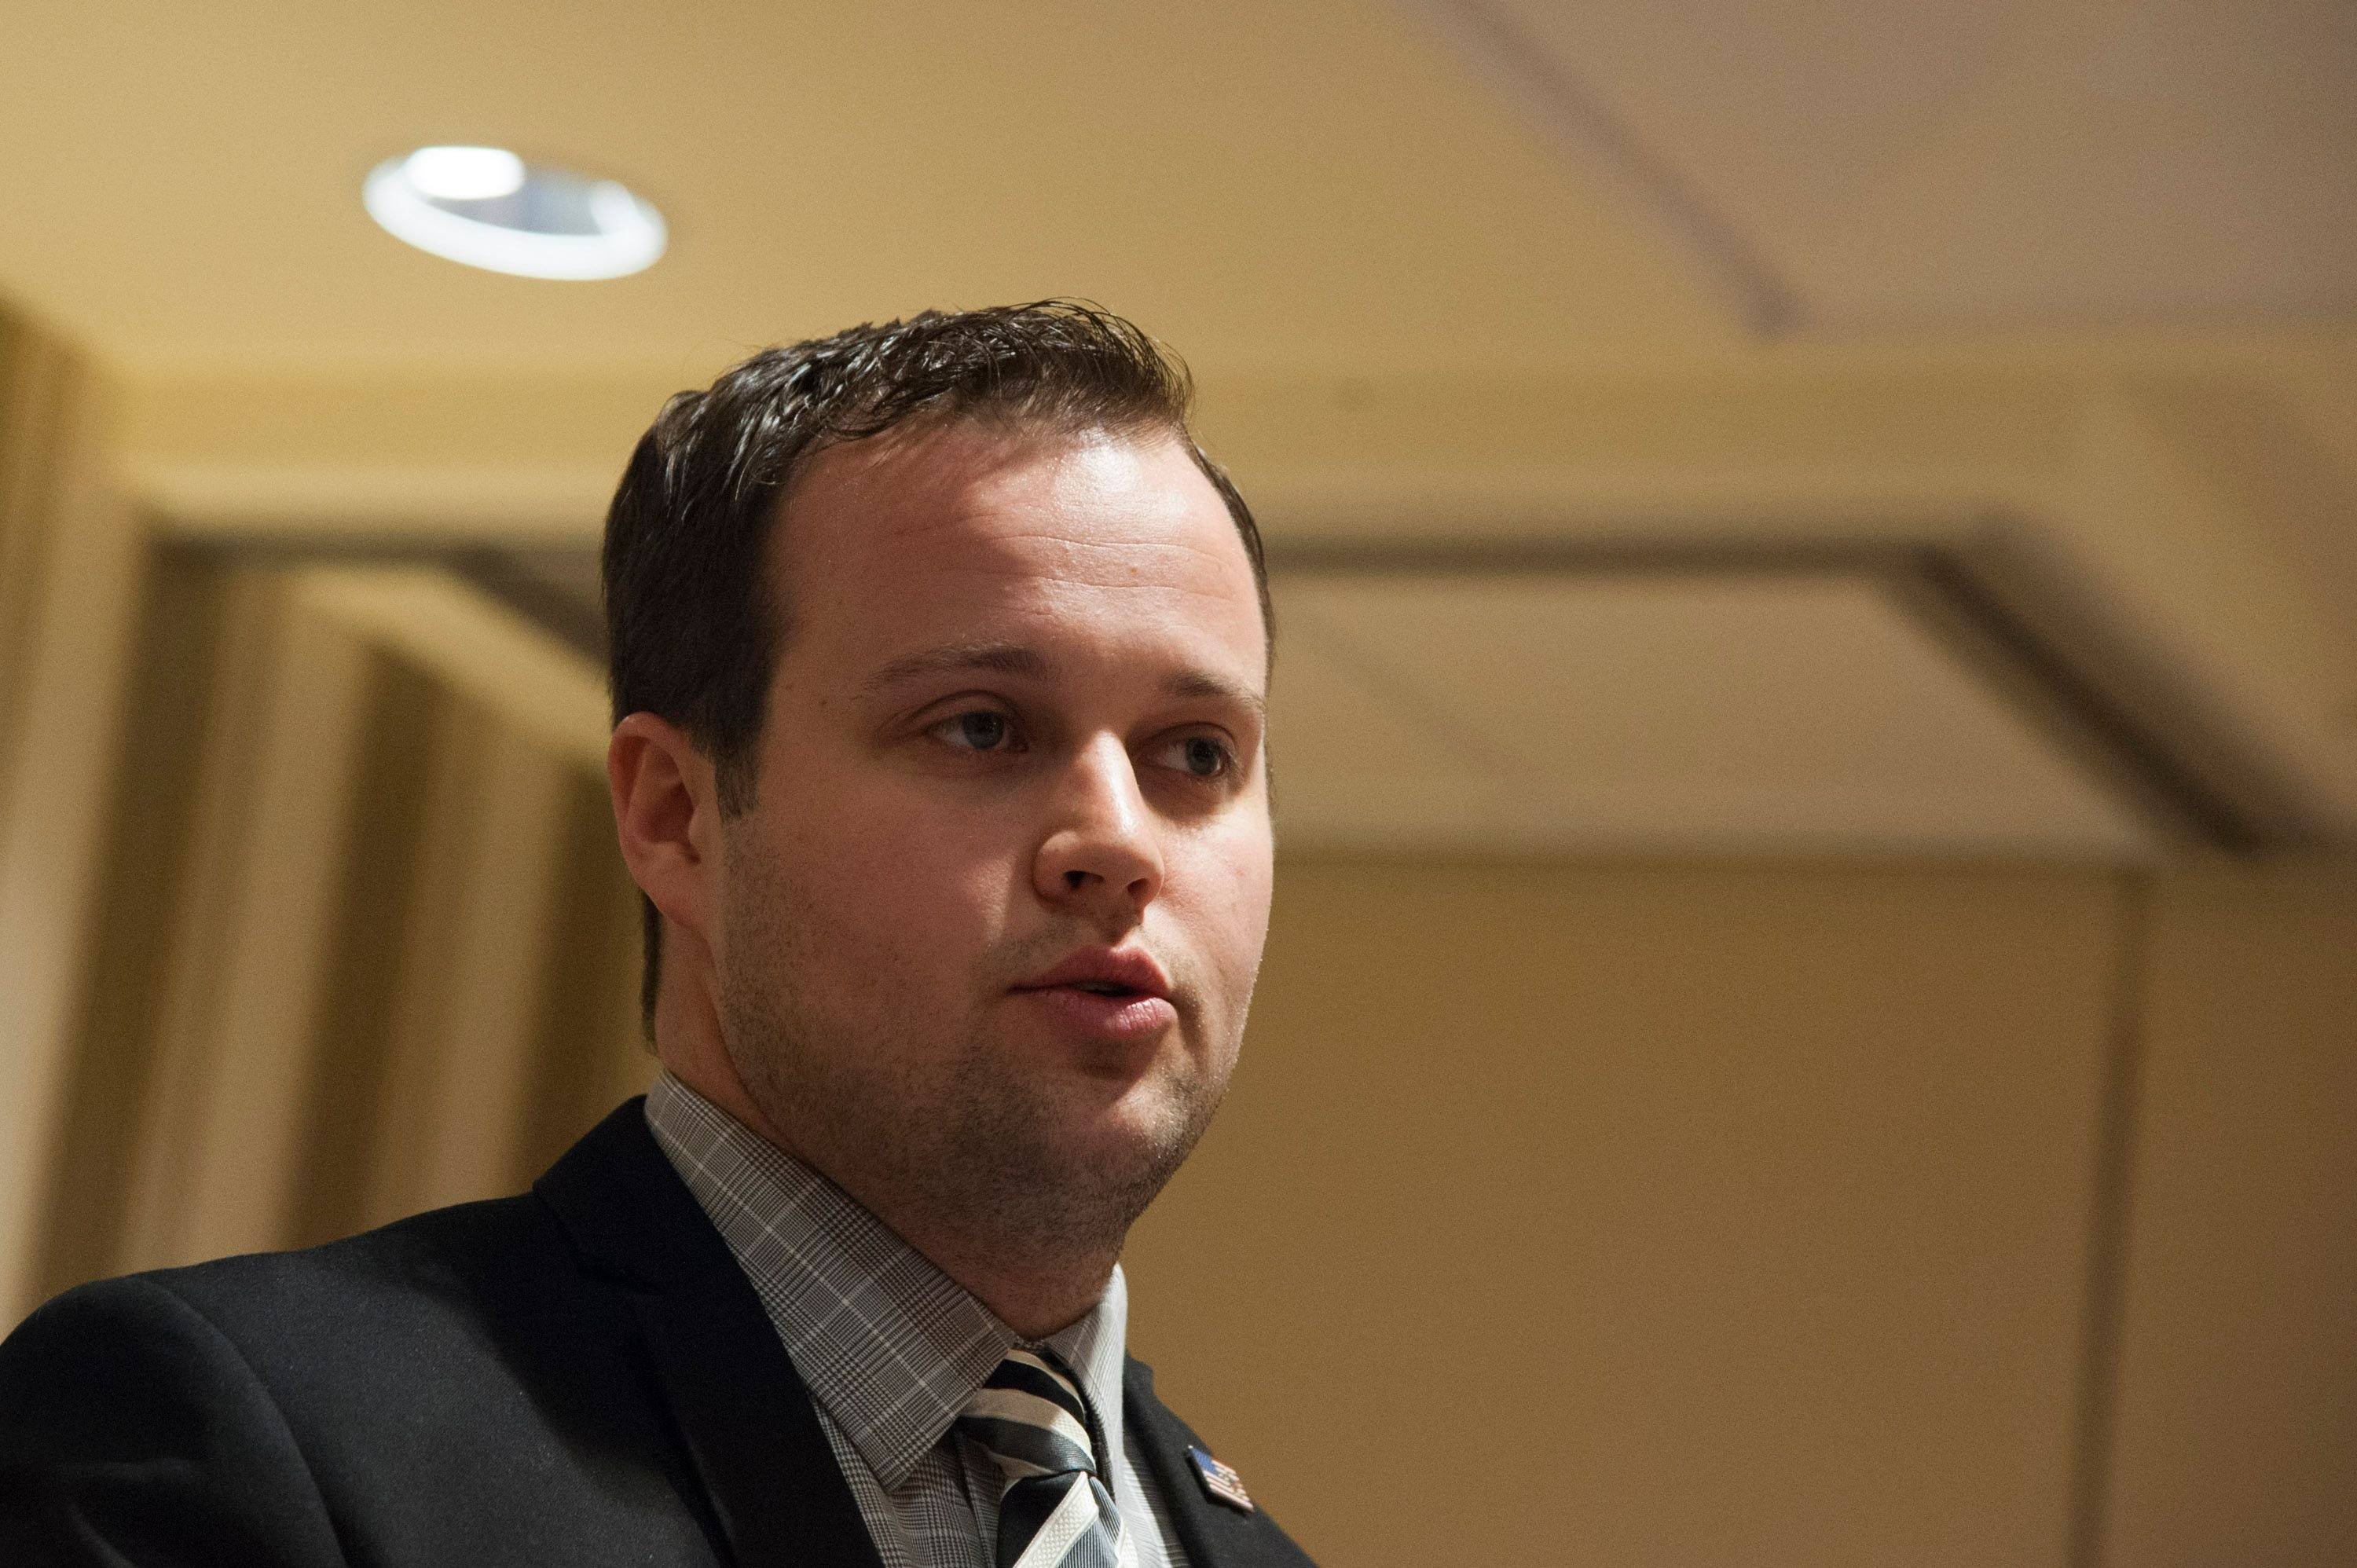 Josh Duggar speaking during the 42nd annual Conservative Political Action Conference at the Gaylord National Resort Hotel and Convention Center in National Harbor, Maryland   Photo: Kris Connor/Getty Images